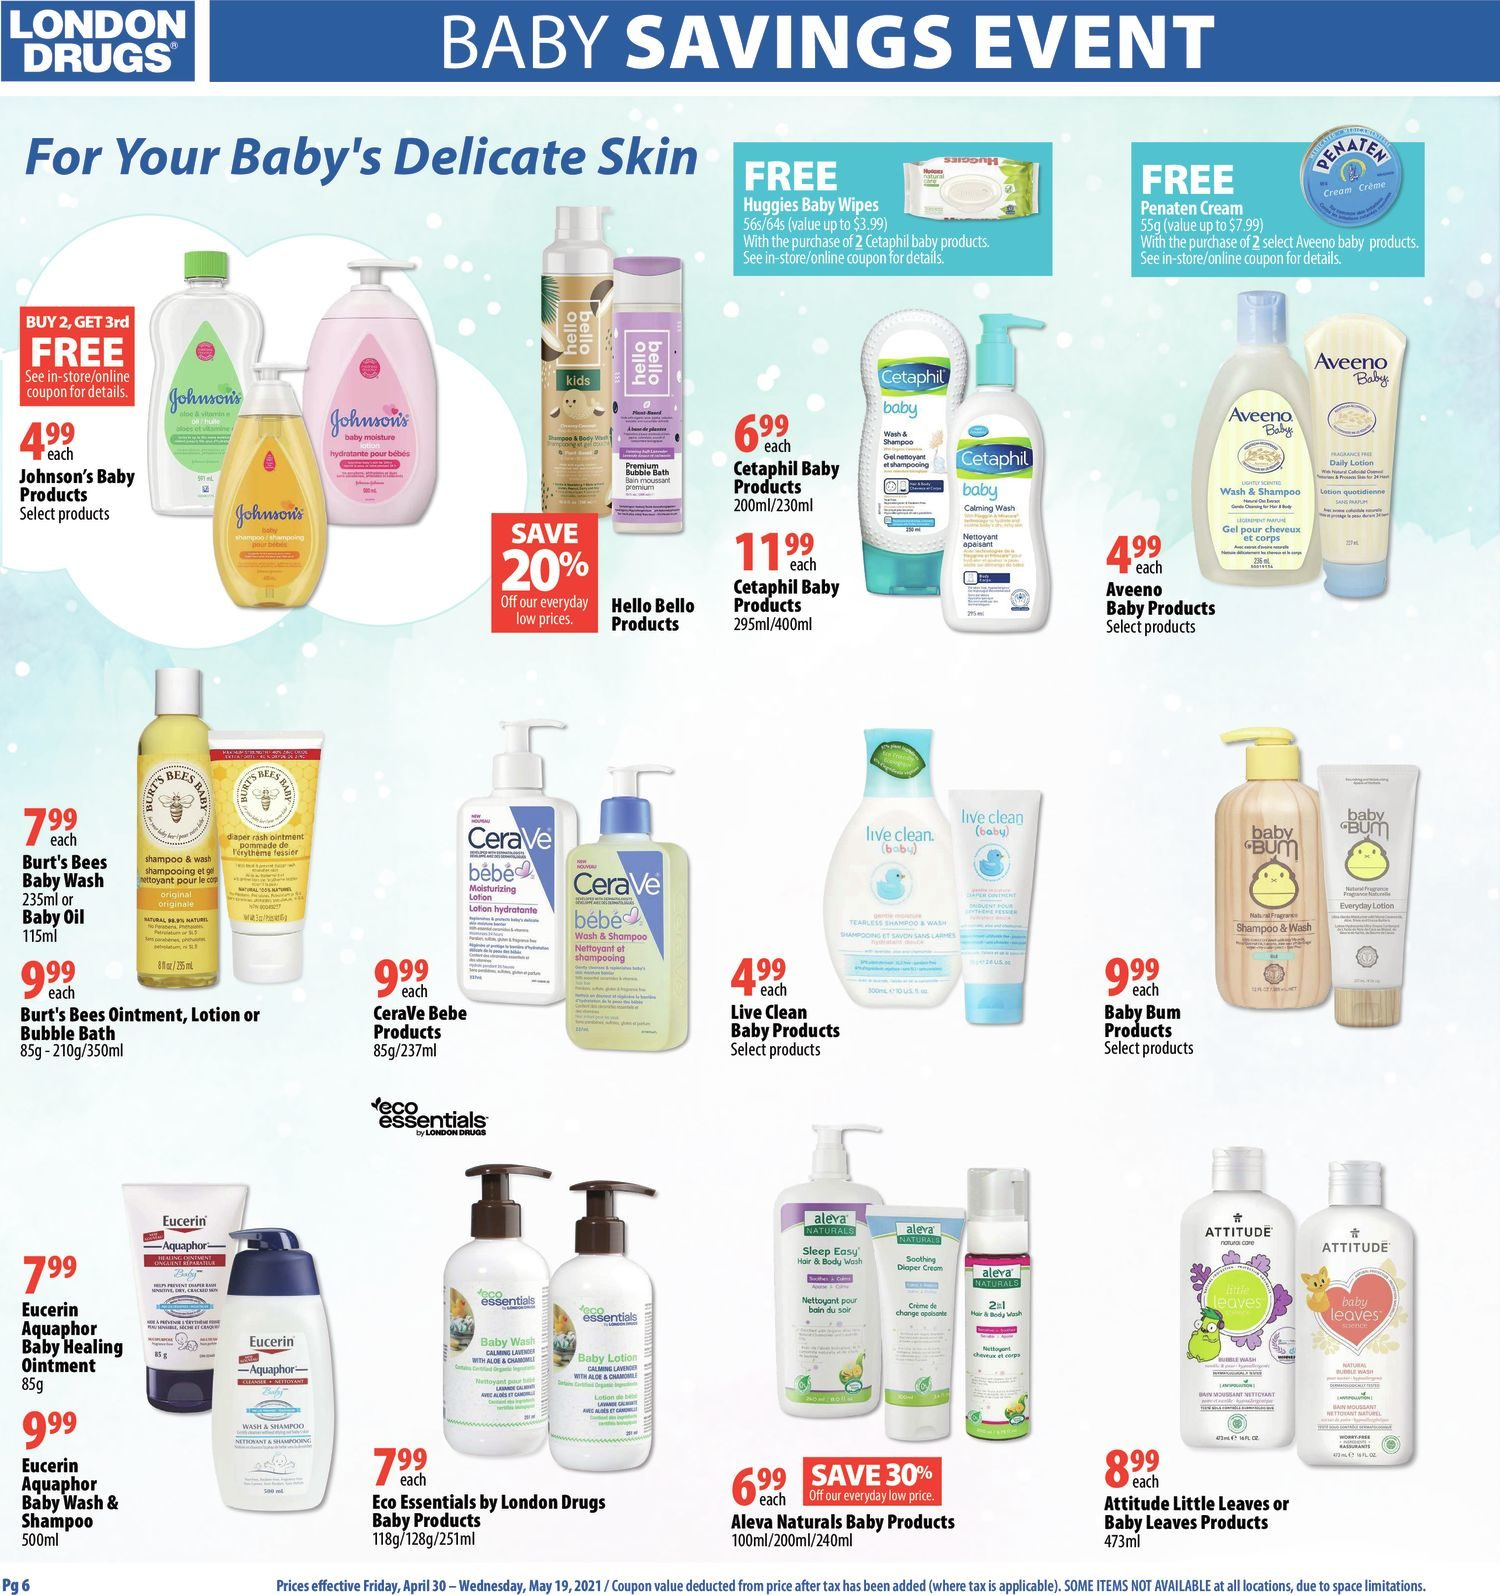 London Drugs - Baby Savings Event - Page 6